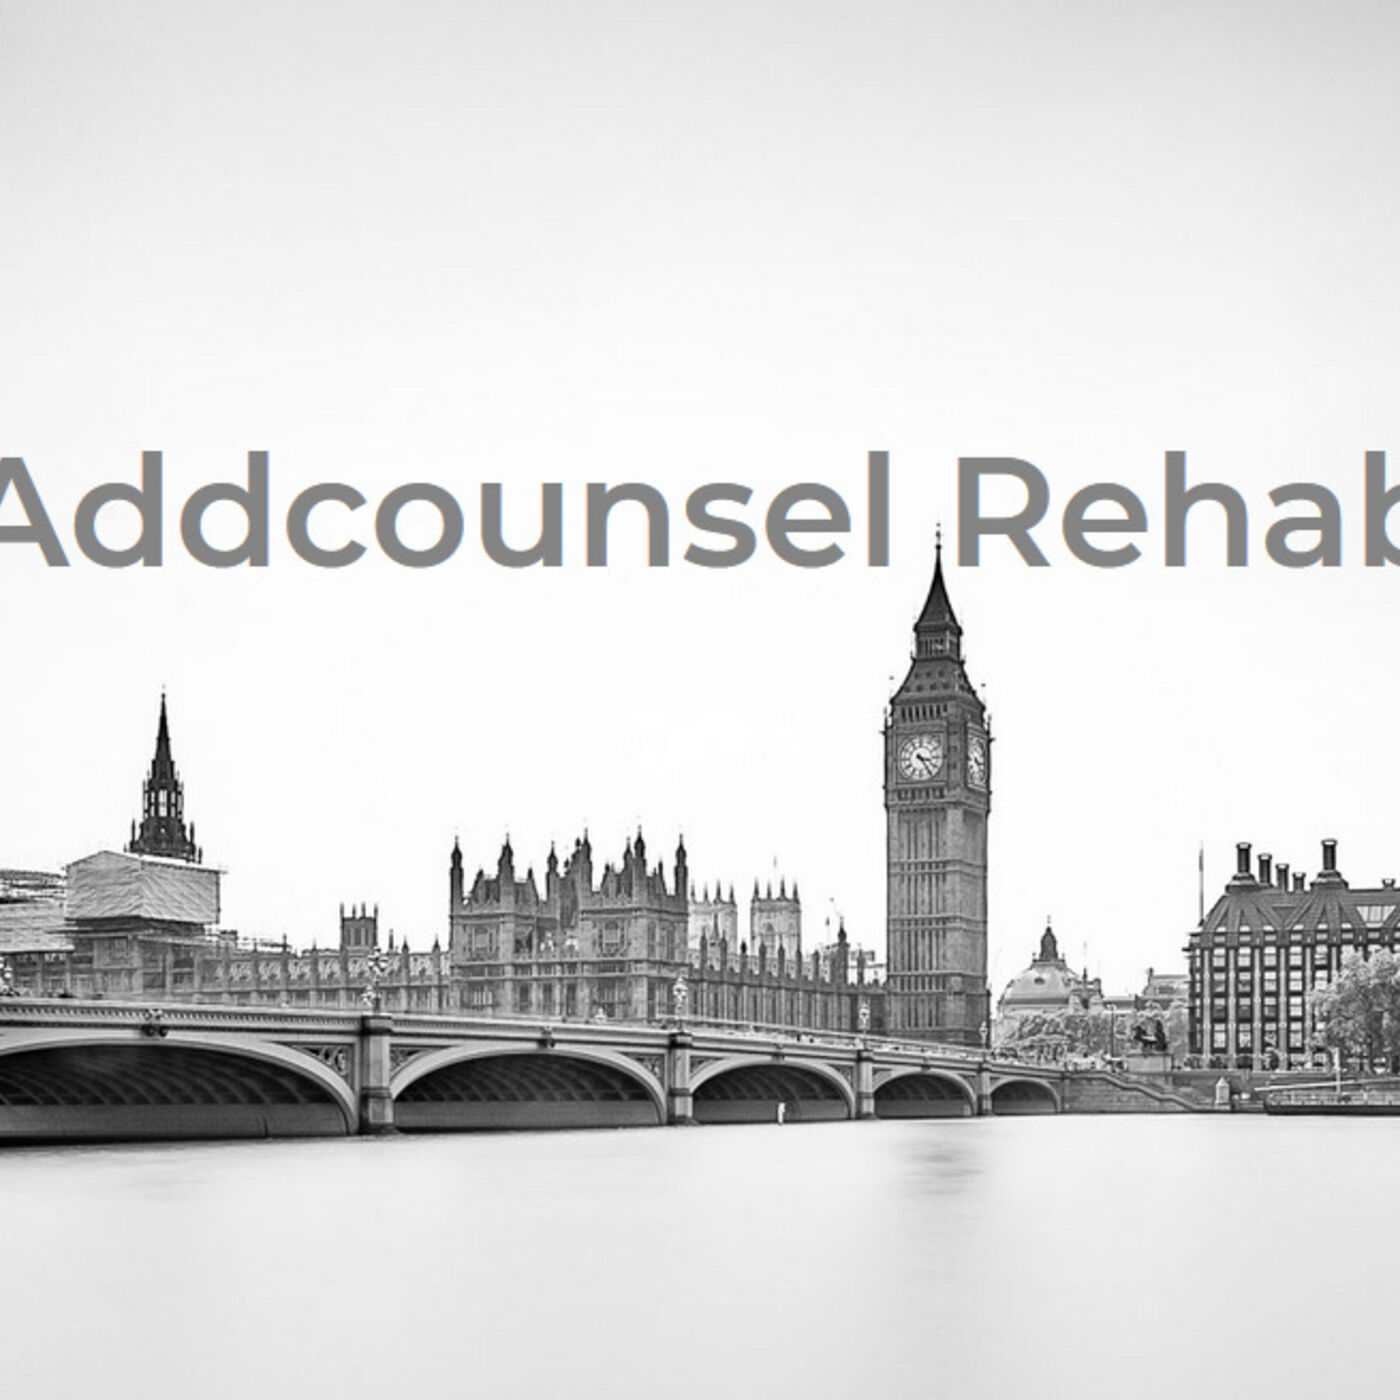 Addcounsel Rehab in London Review (Podcast) * Can They Be Trusted? All Info on Addcounsel London